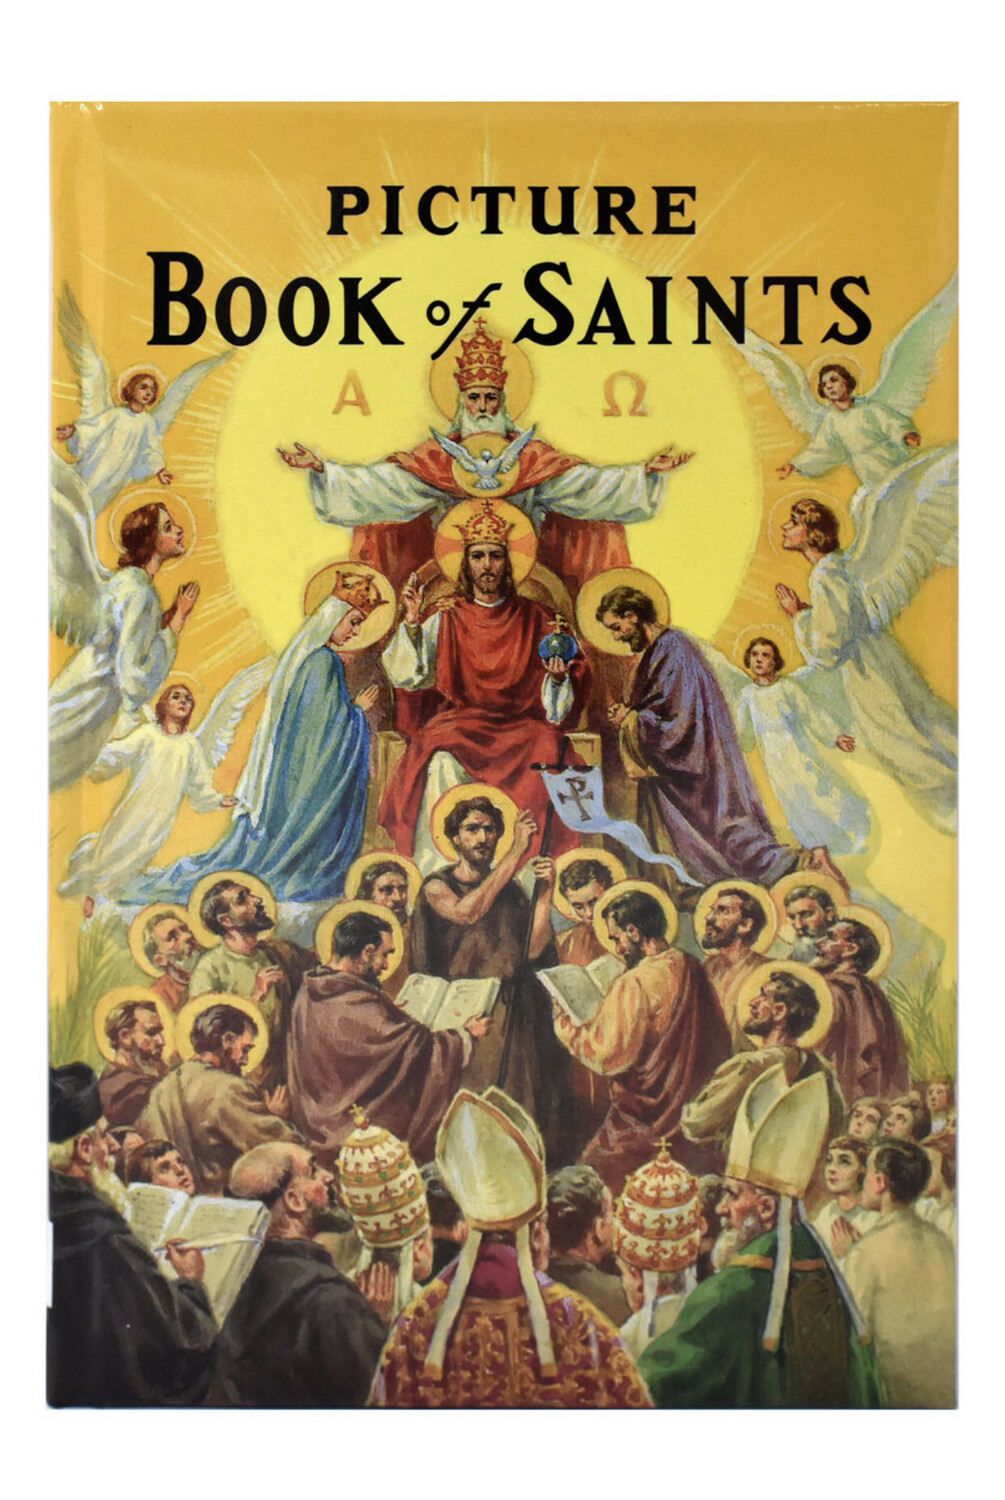 Illustrated Book of Saints 735/22